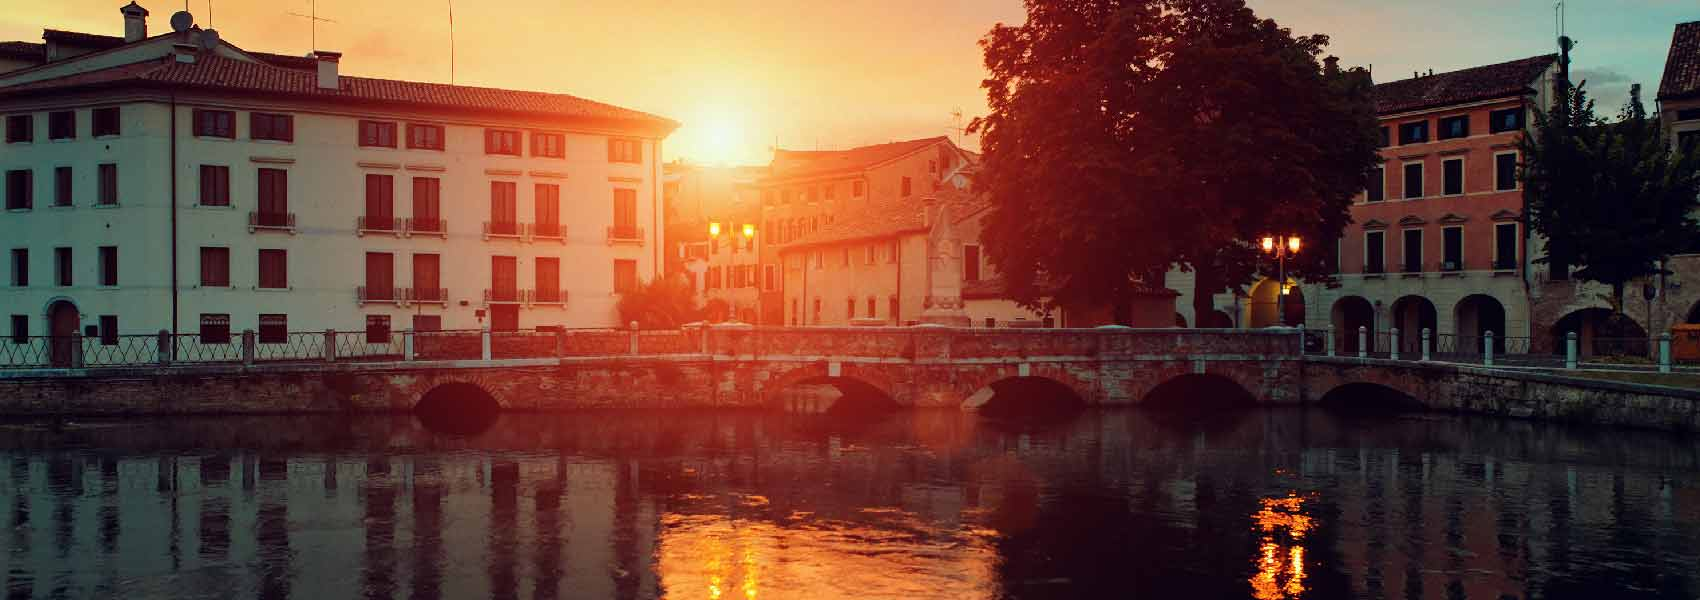 Treviso awaits you!